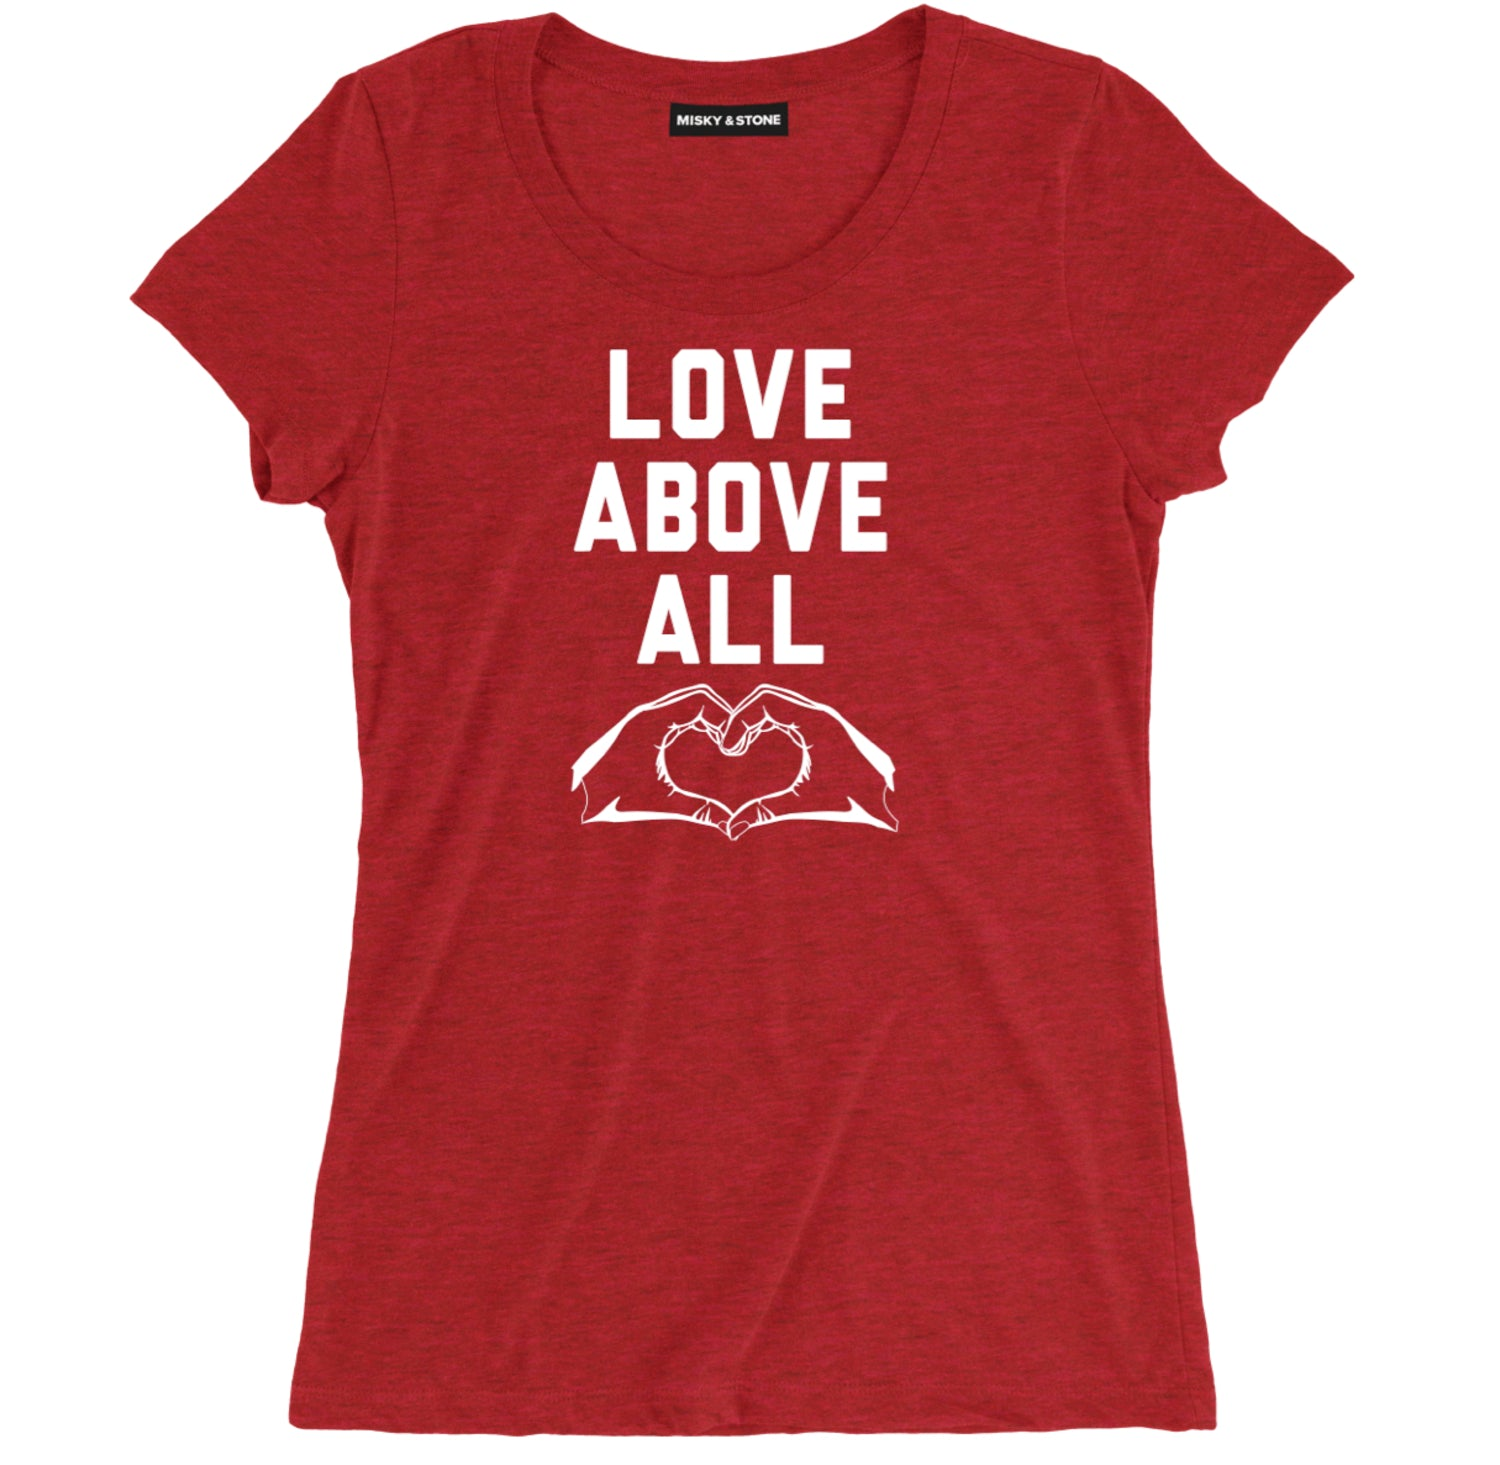 Love Above All Womens Tee Shirt